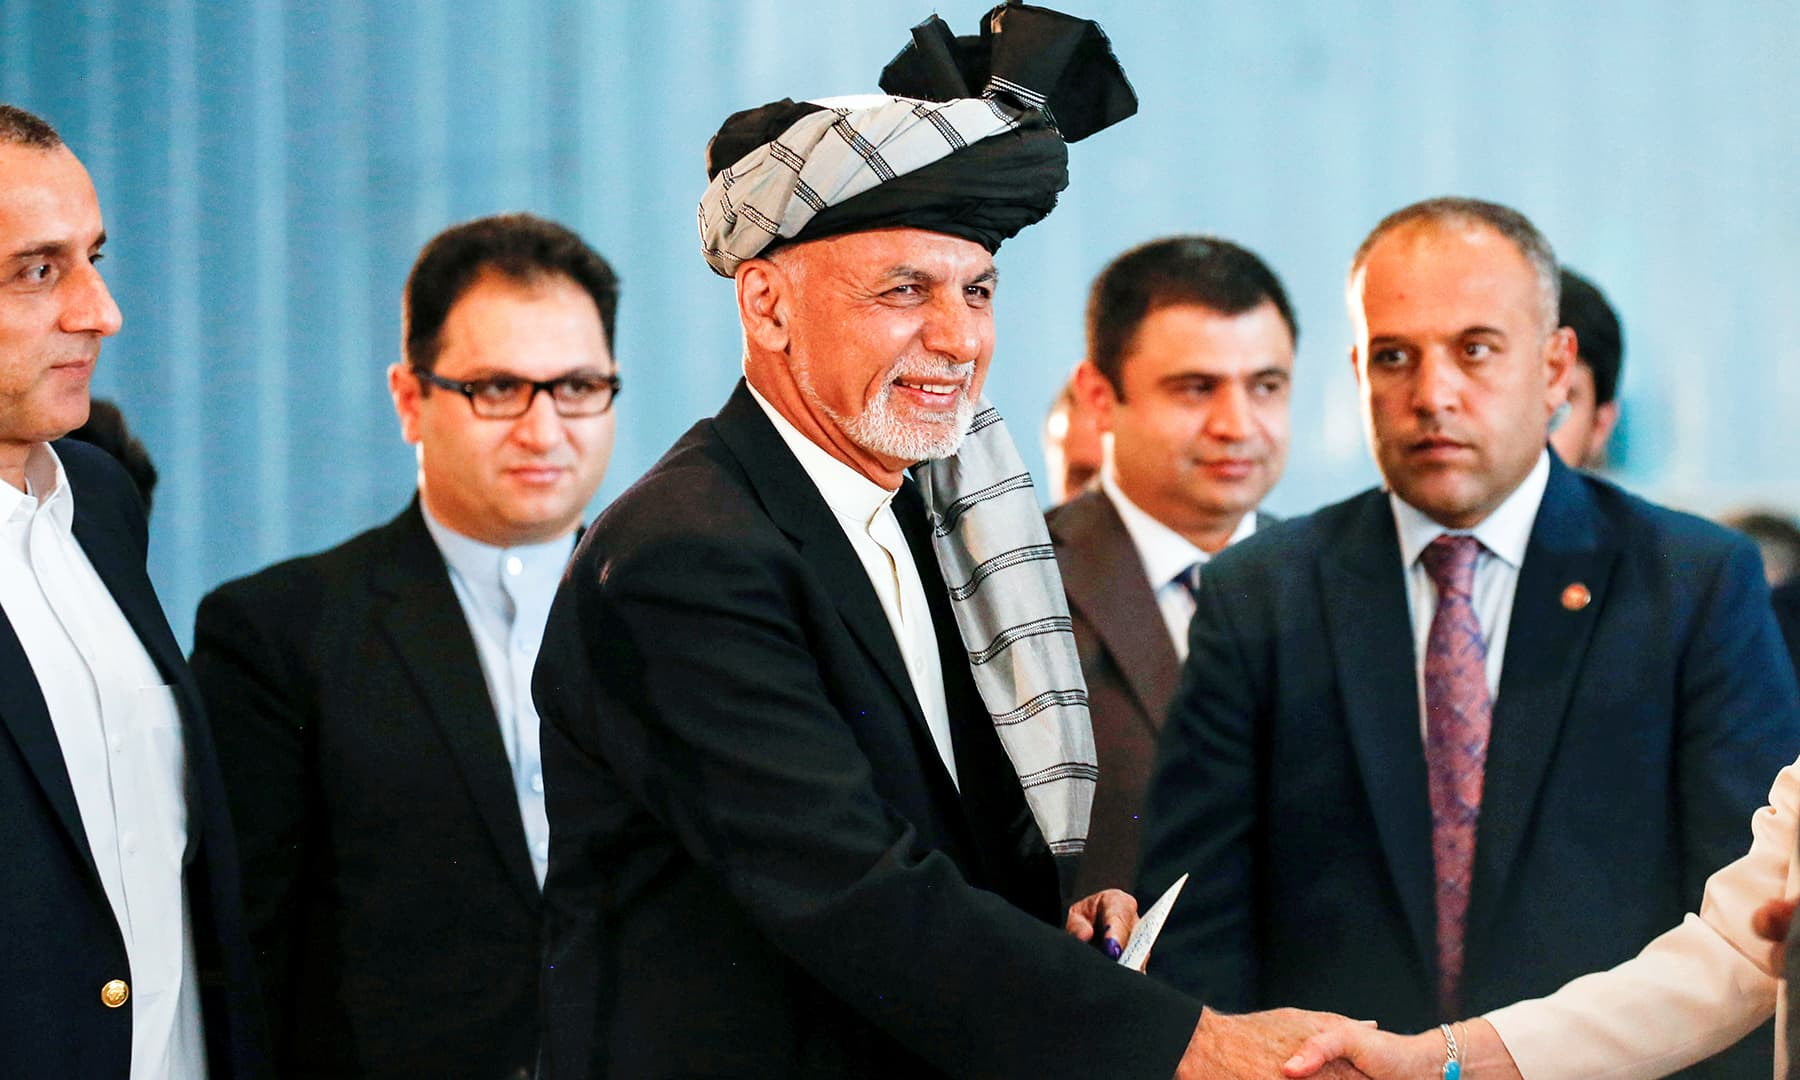 Afghan presidential candidate Ashraf Ghani arrives to cast his vote in the presidential election in Kabul. — Reuters